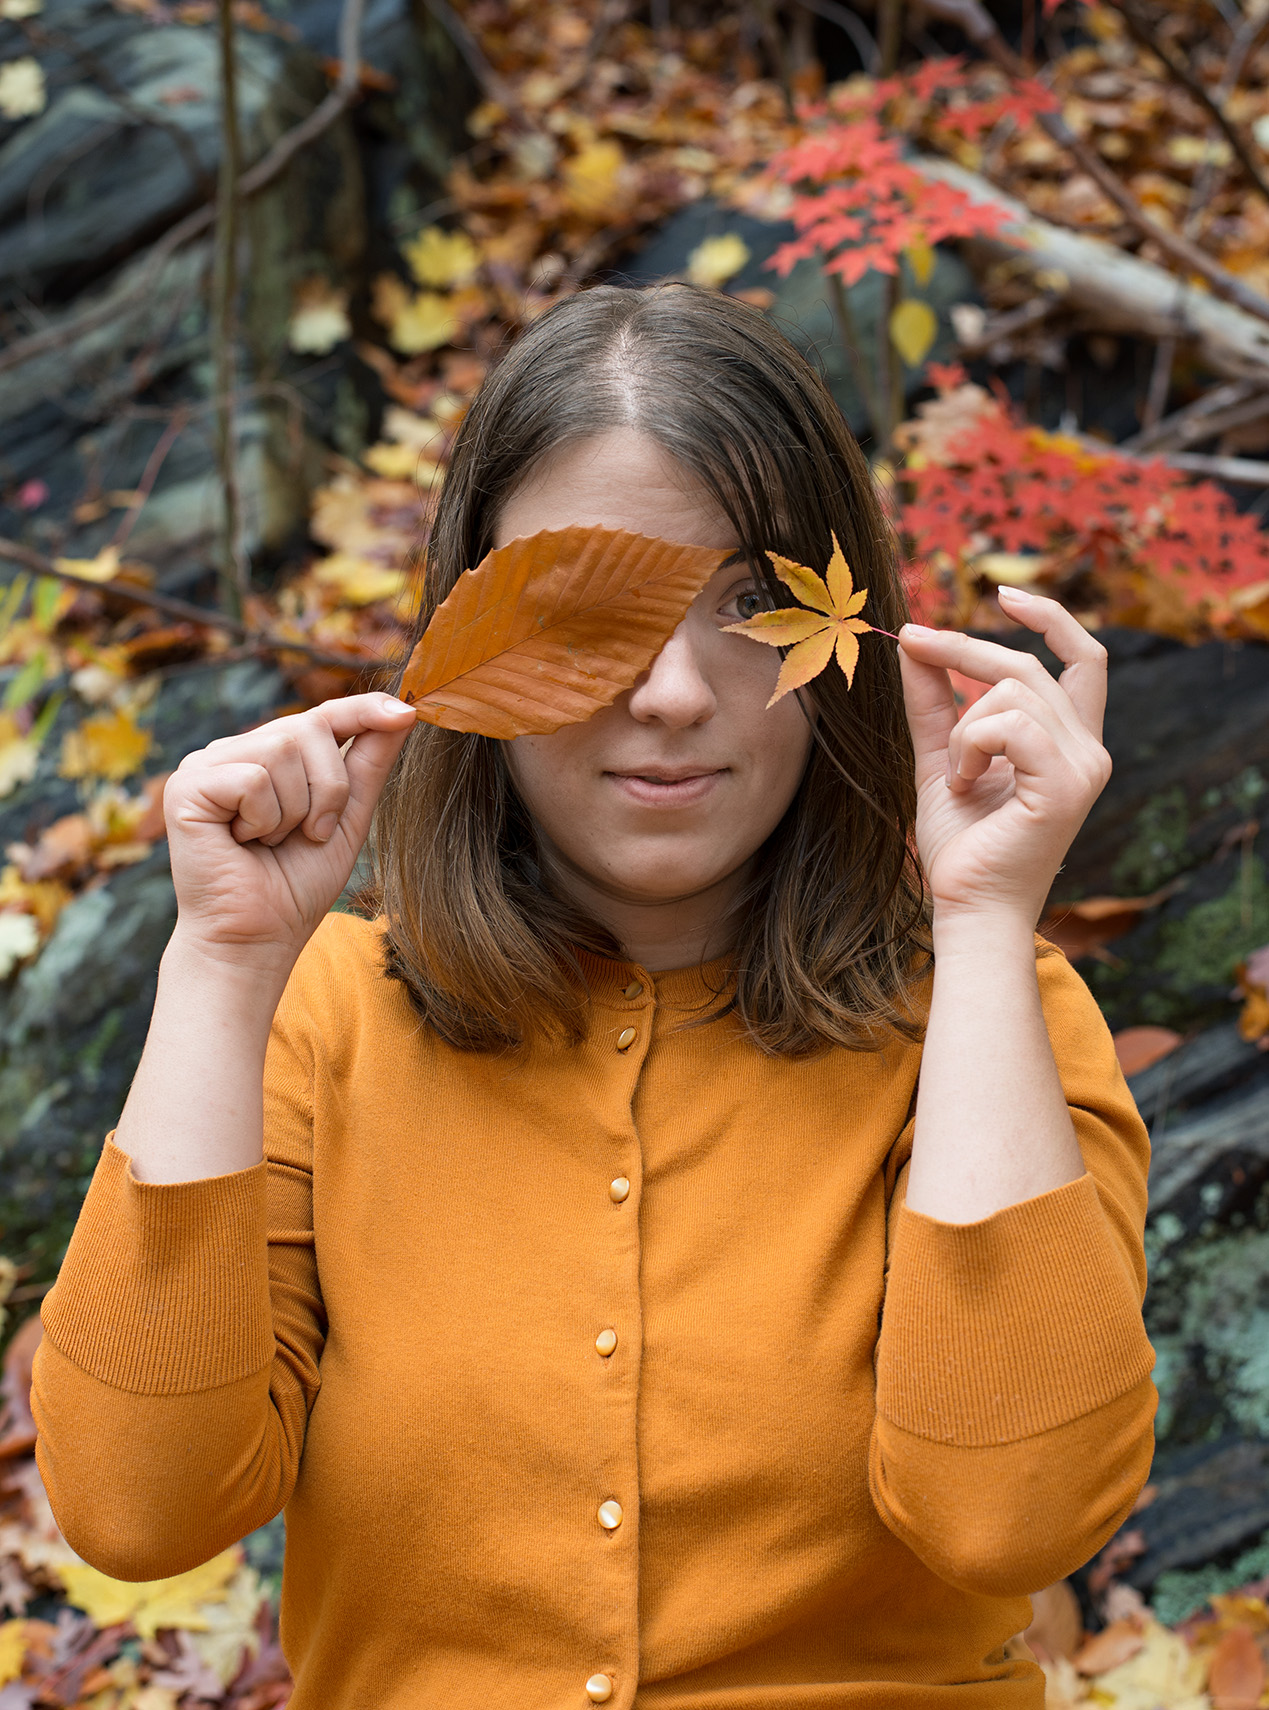 LeahEdelmanBrier_Hannah with leaves.jpg